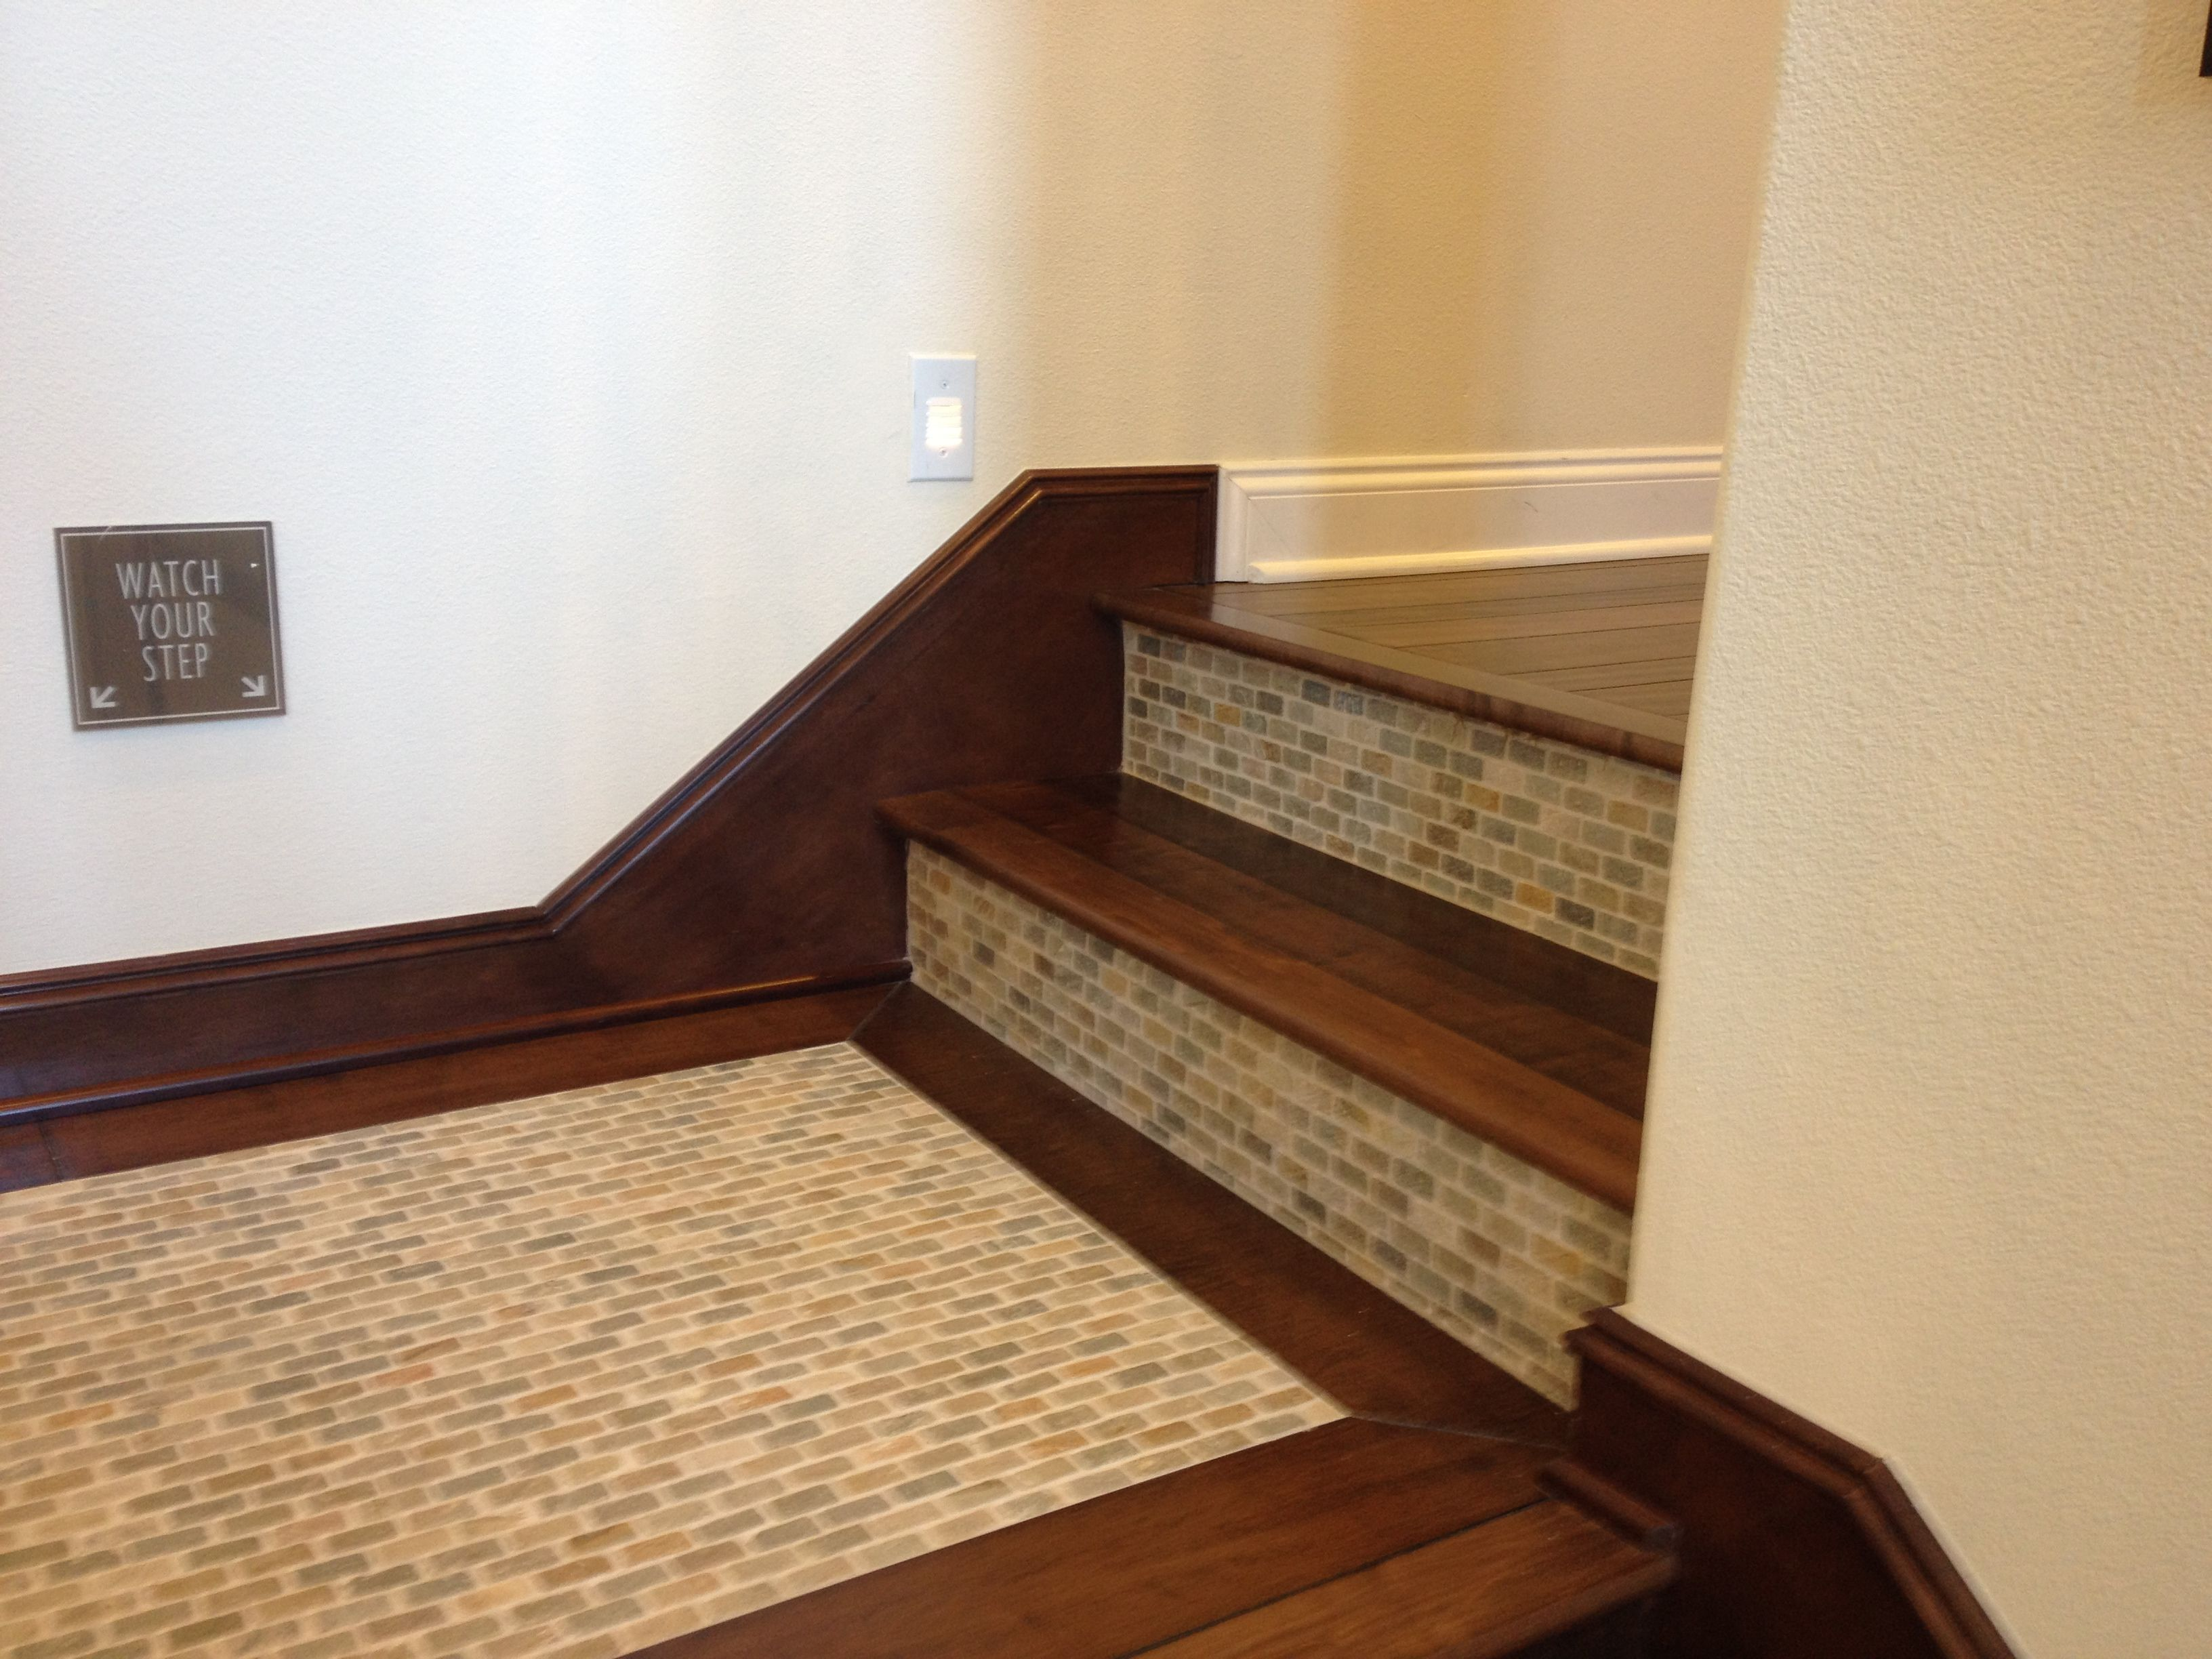 Stair Tile Ideas With Tile On Stairs & Landing | Home ...